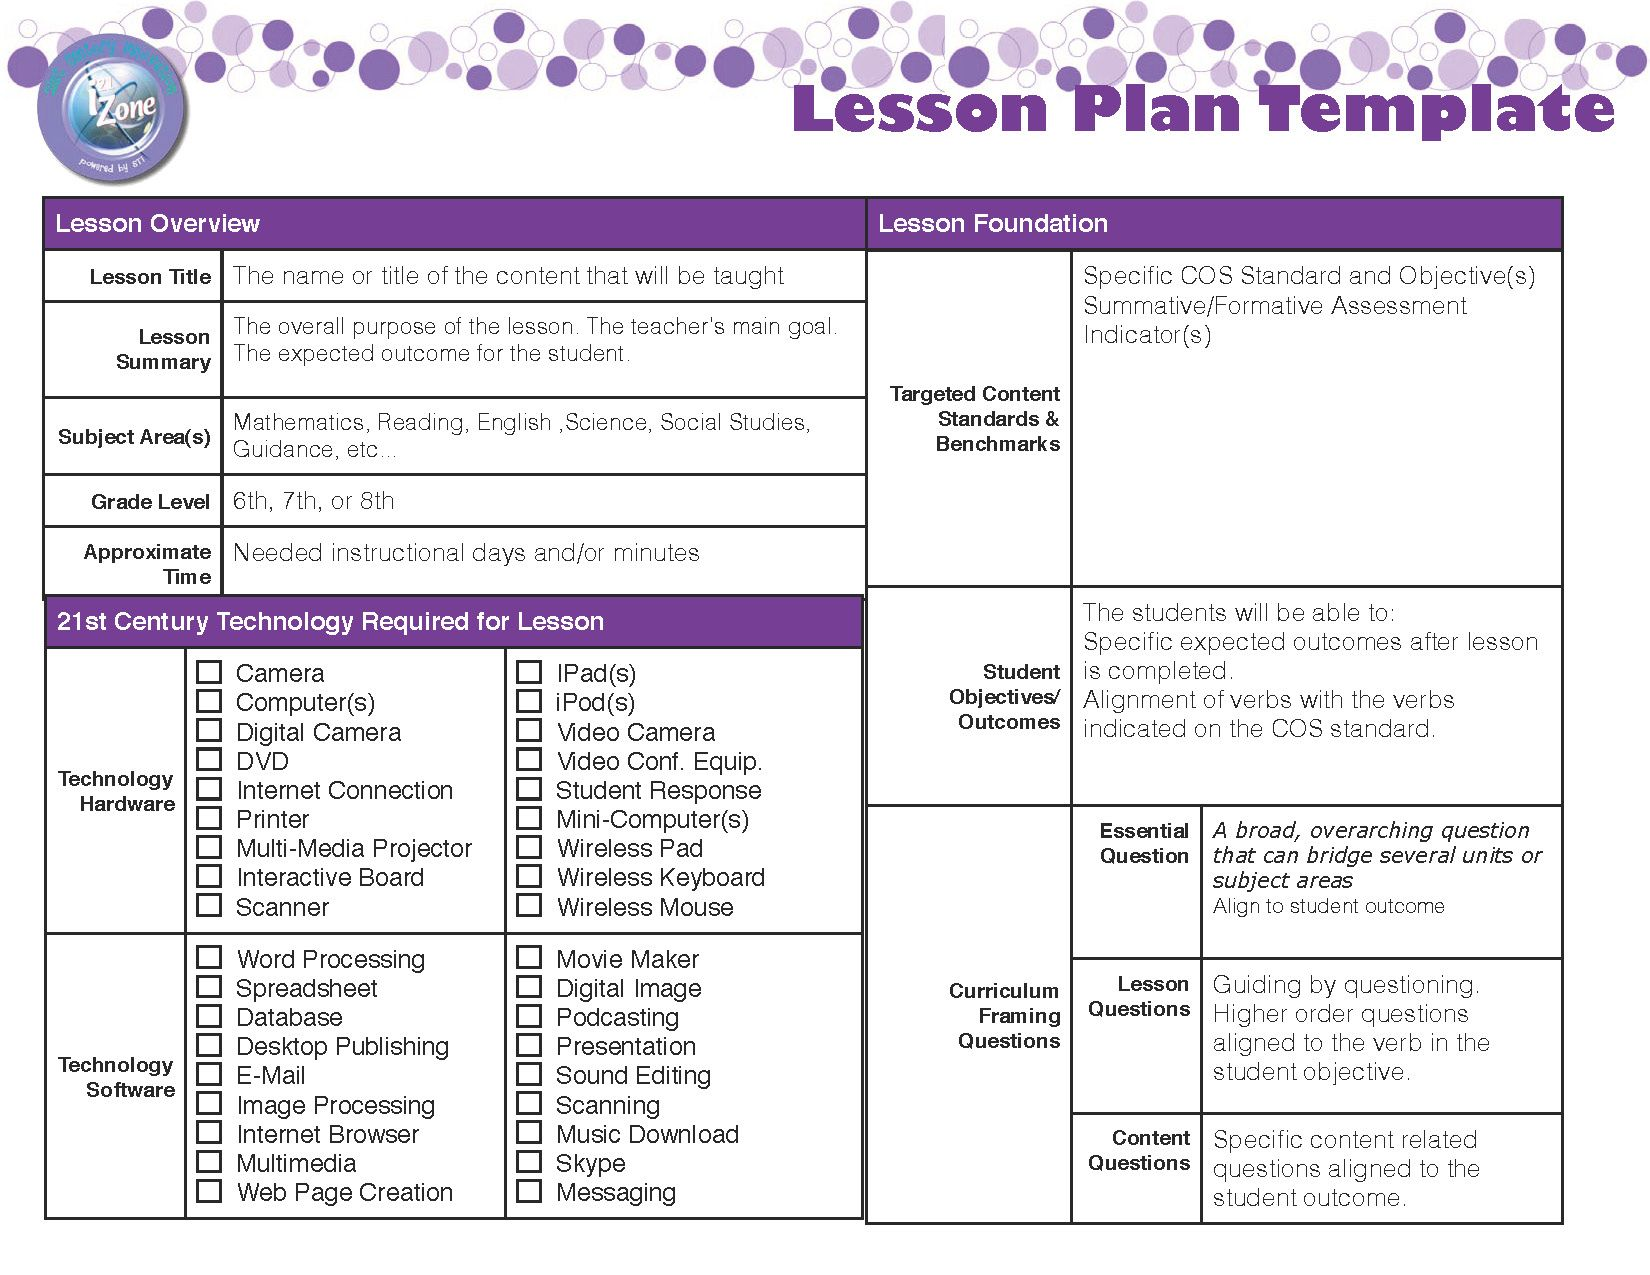 32 best Unit Plan & Lesson Plan Templates images on Pinterest